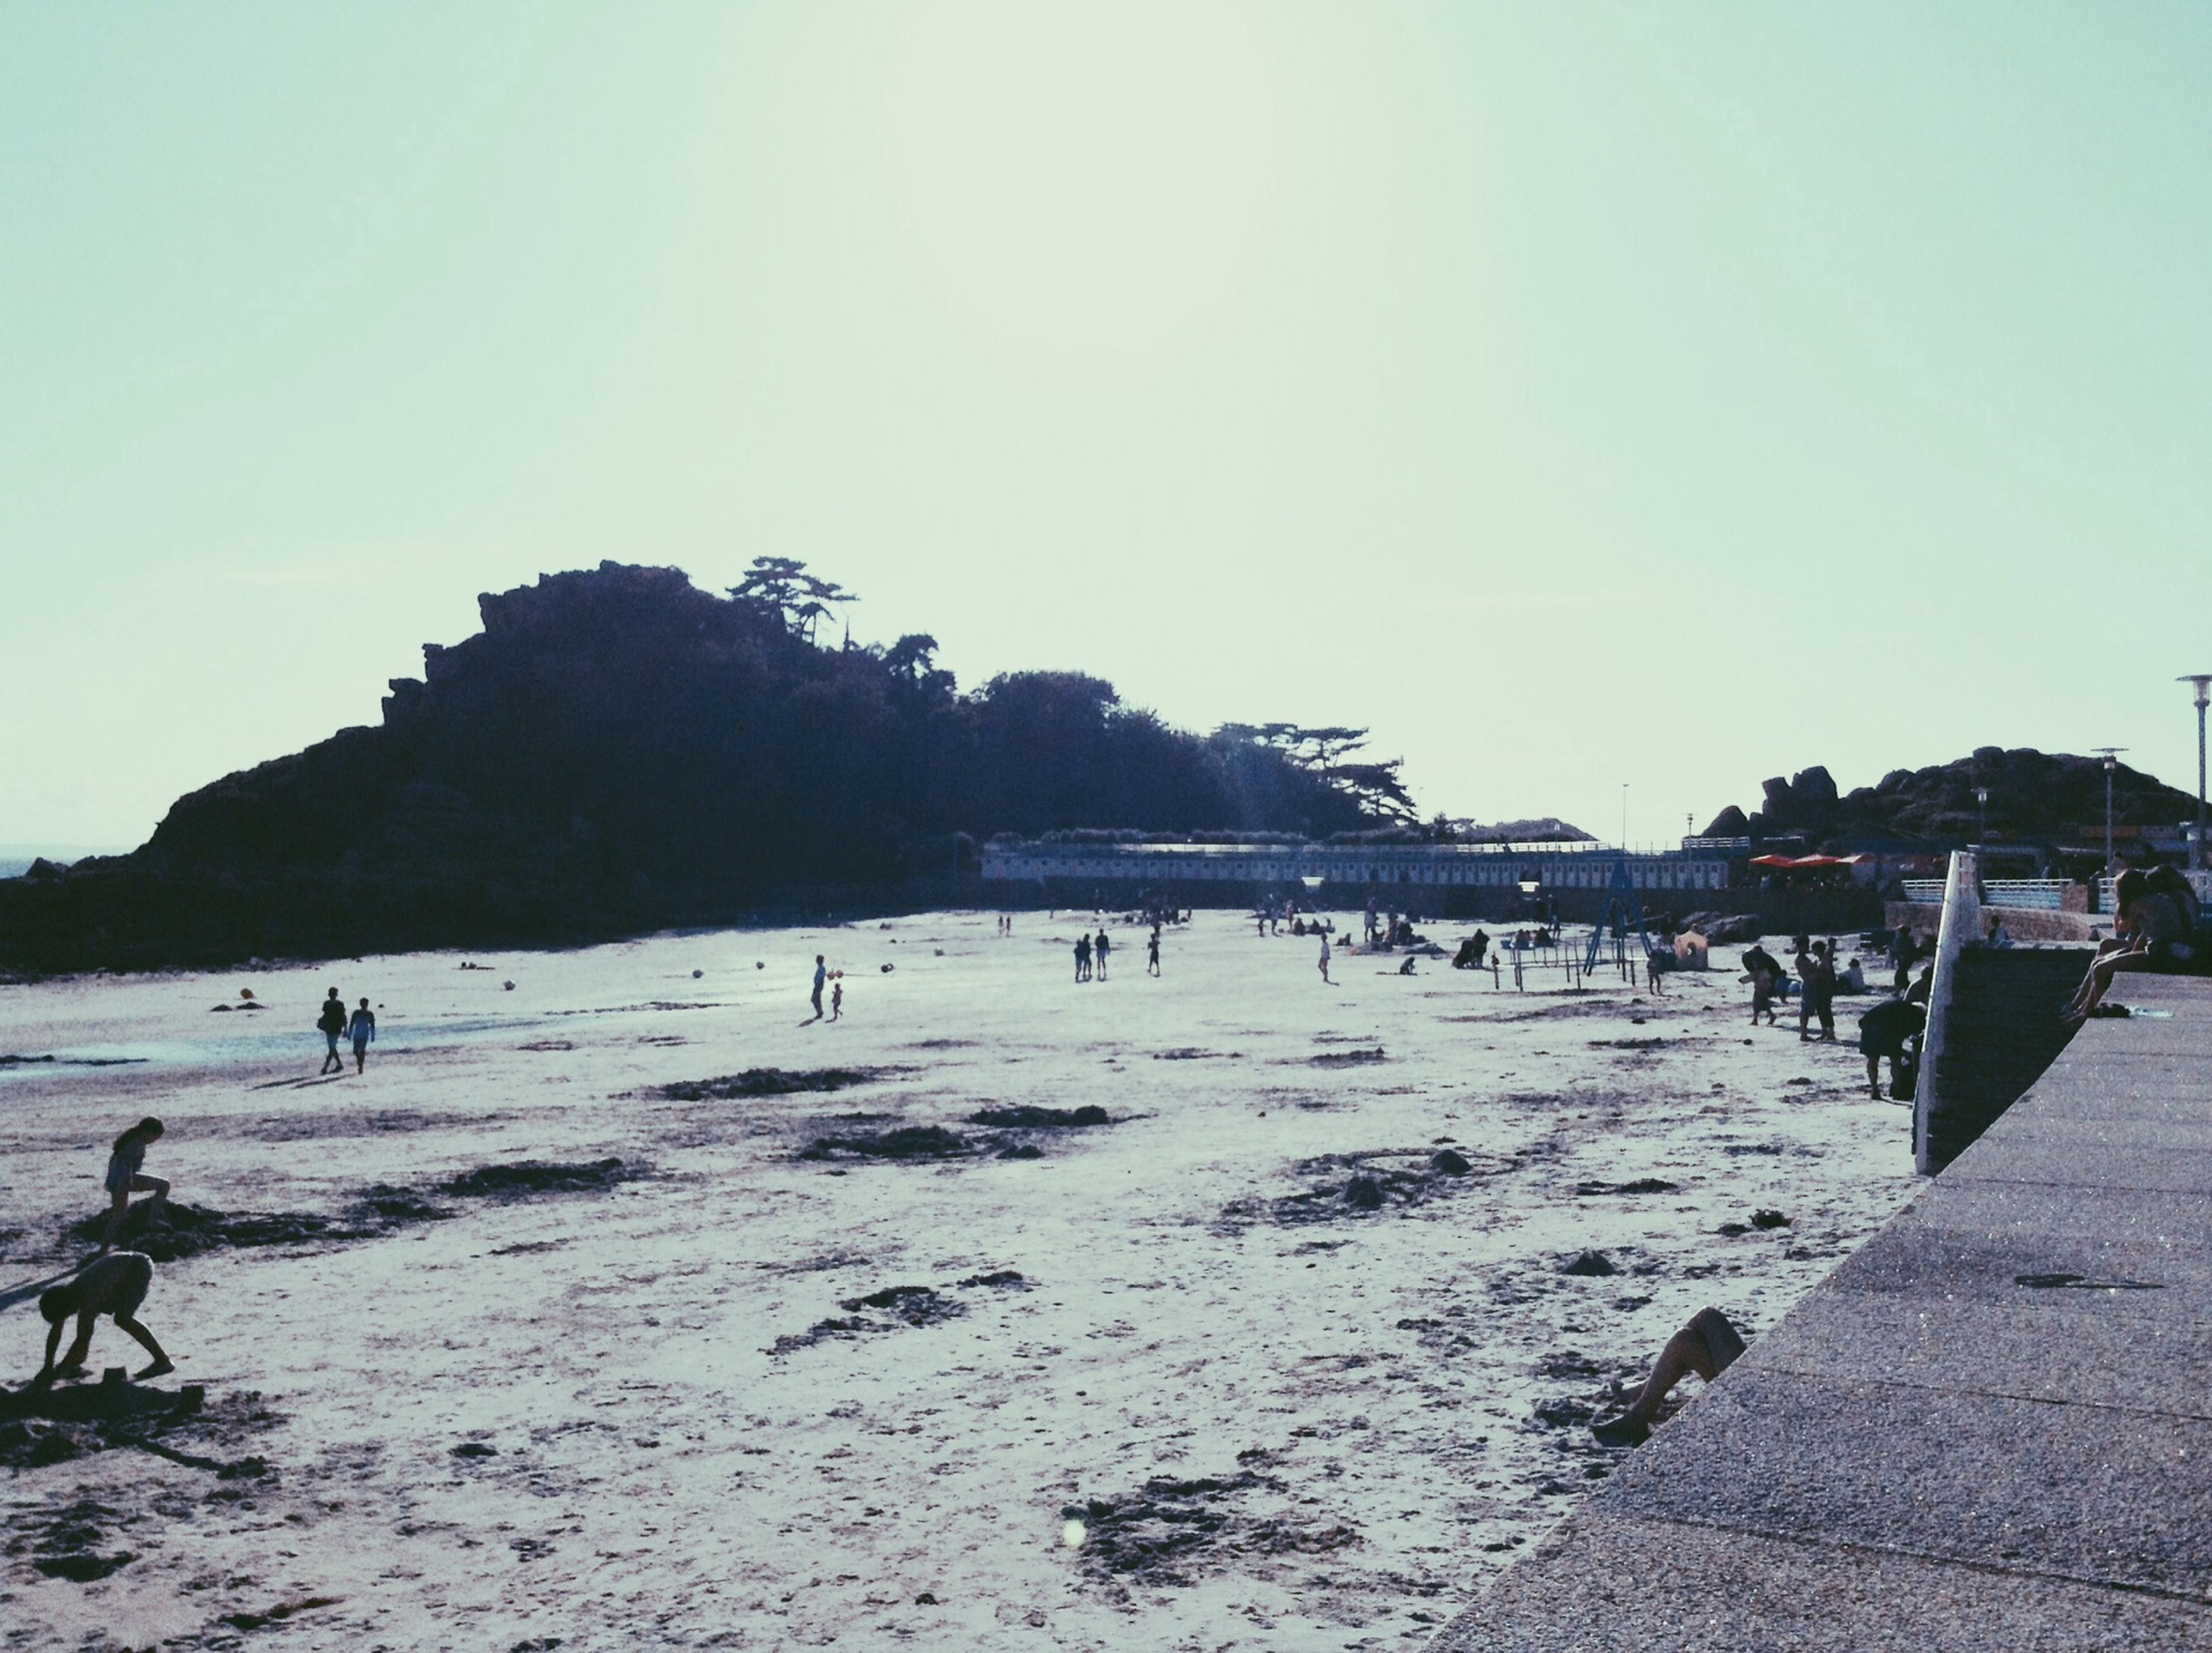 beach, large group of people, clear sky, sand, sea, shore, water, tranquil scene, vacations, scenics, tourist, copy space, tranquility, incidental people, nature, sky, mixed age range, beauty in nature, leisure activity